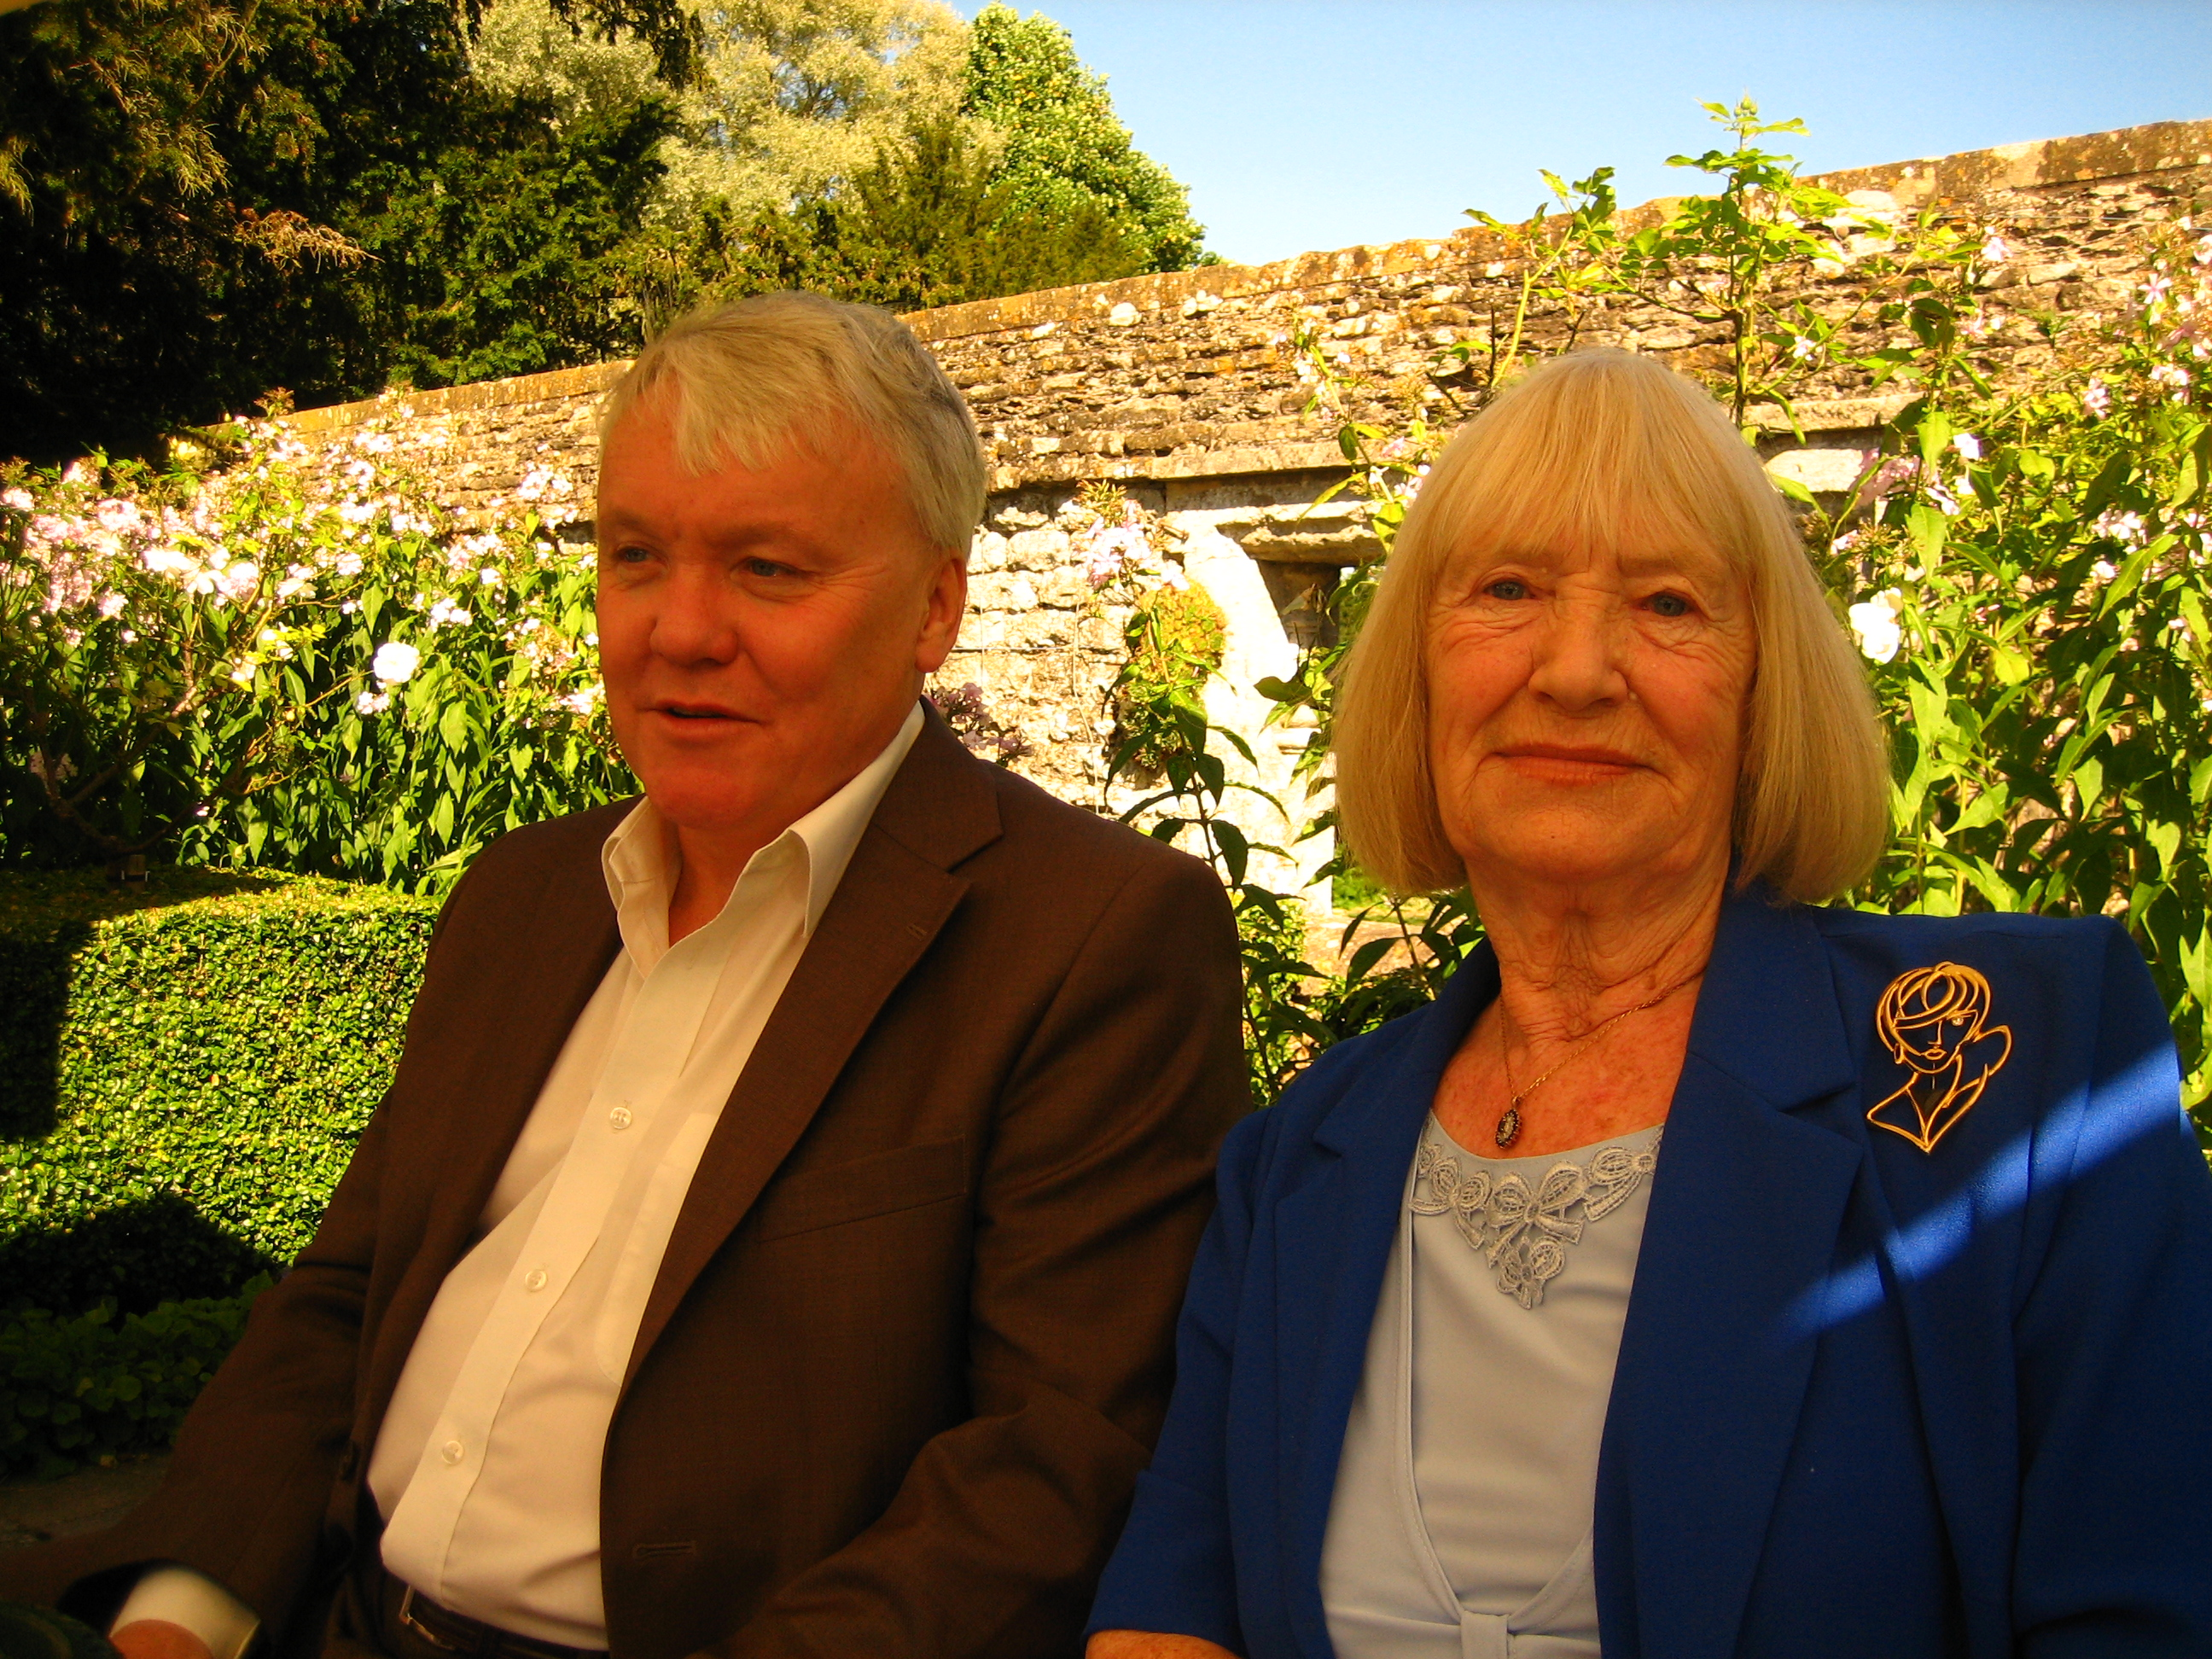 With 'Betty' my mum at Le Manoir